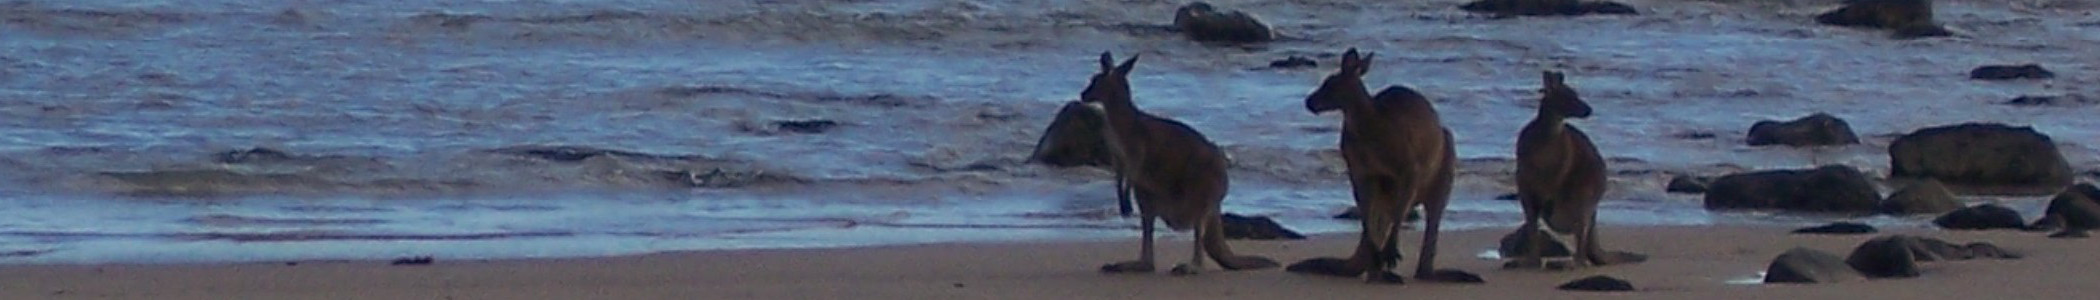 Kangaroos on a beach.